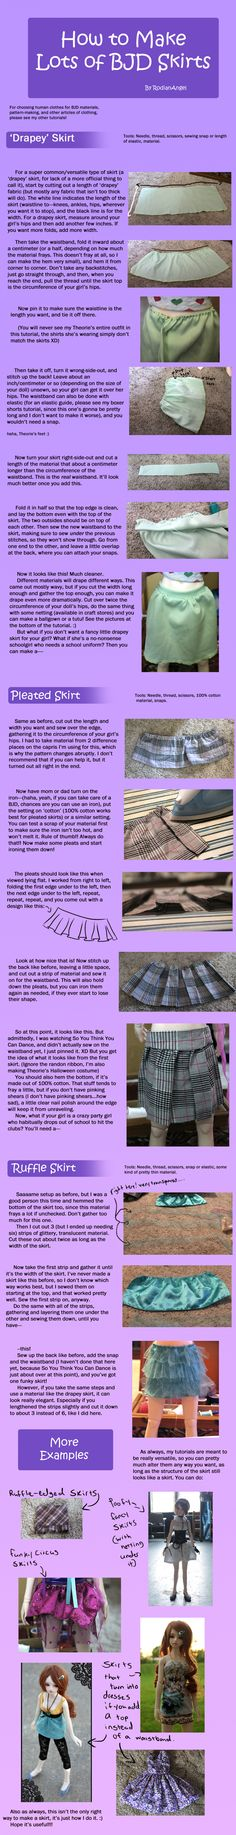 how_to_make_lots_of_bjd_skirts_by_rodianangel-d6l0b4o.jpg 456×3,547 pixels